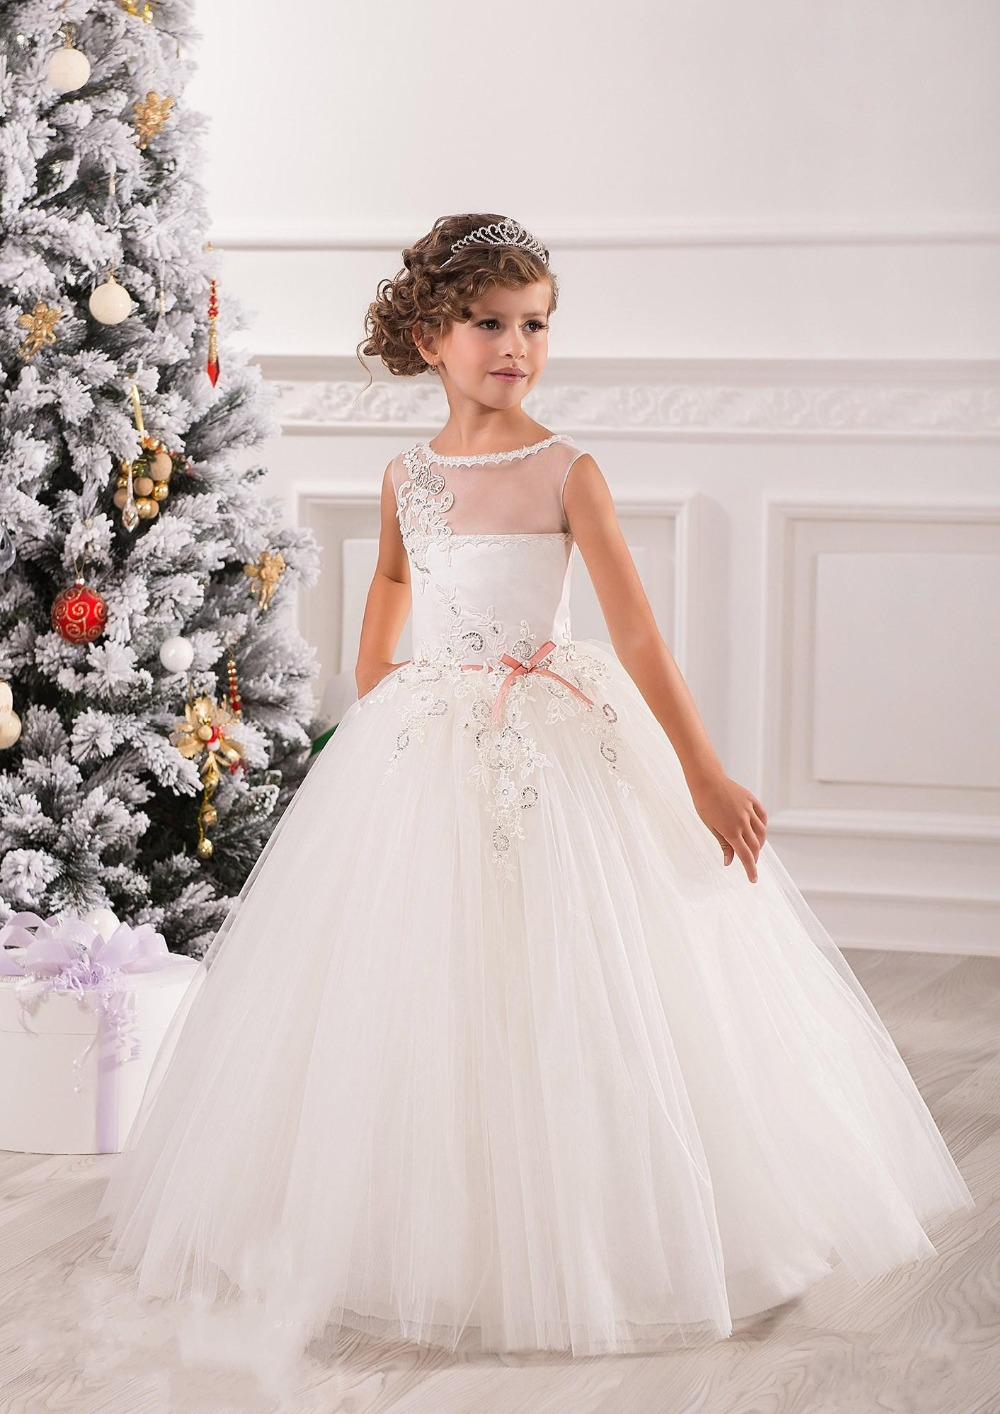 Elegant white lace ball gowns tulle flower girl dresses for Flower girls wedding dresses